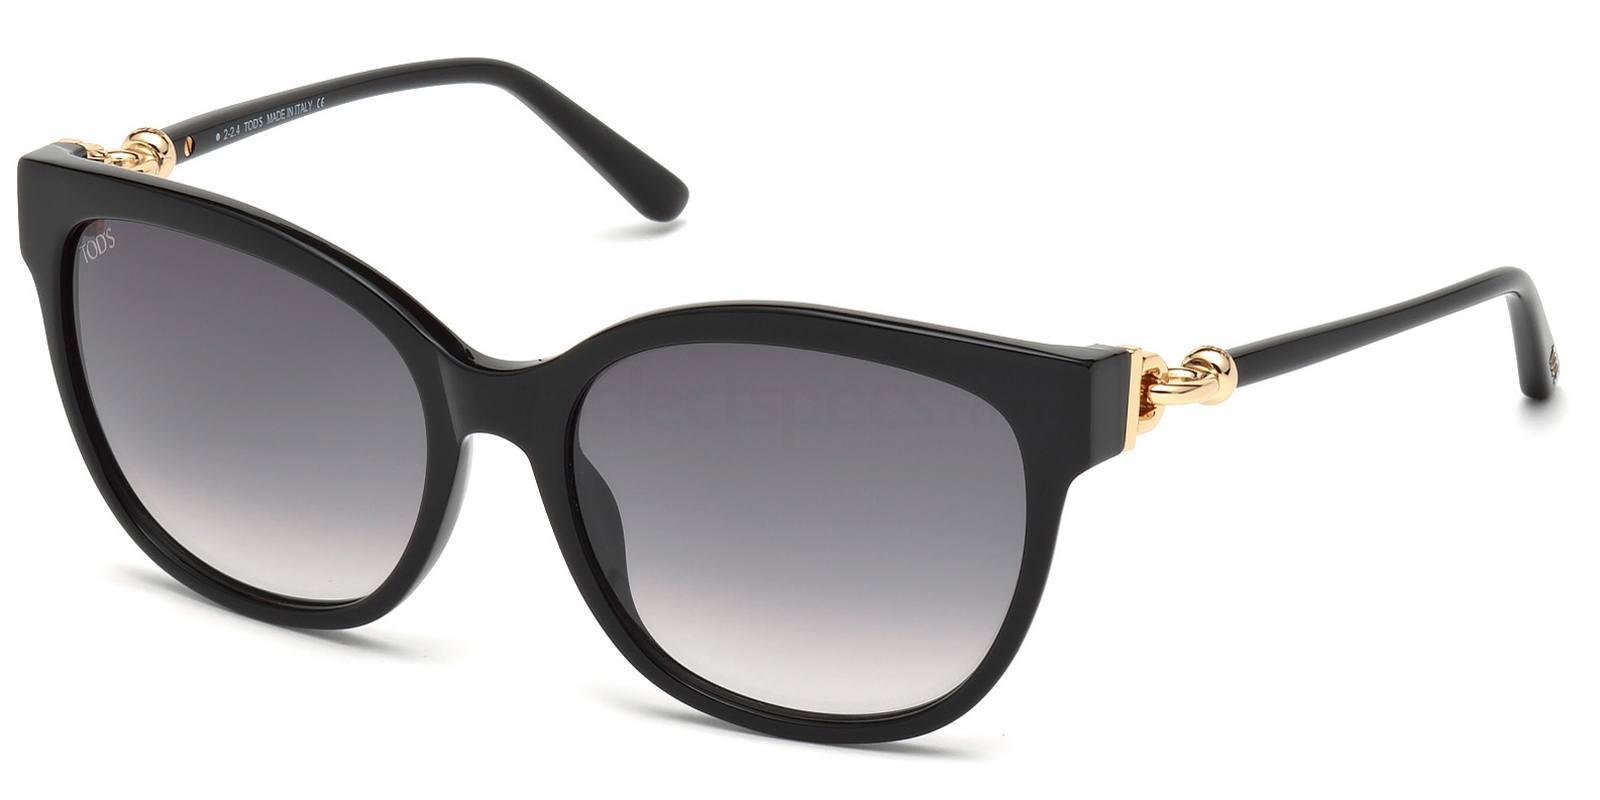 01B TO0153 Sunglasses, TODS